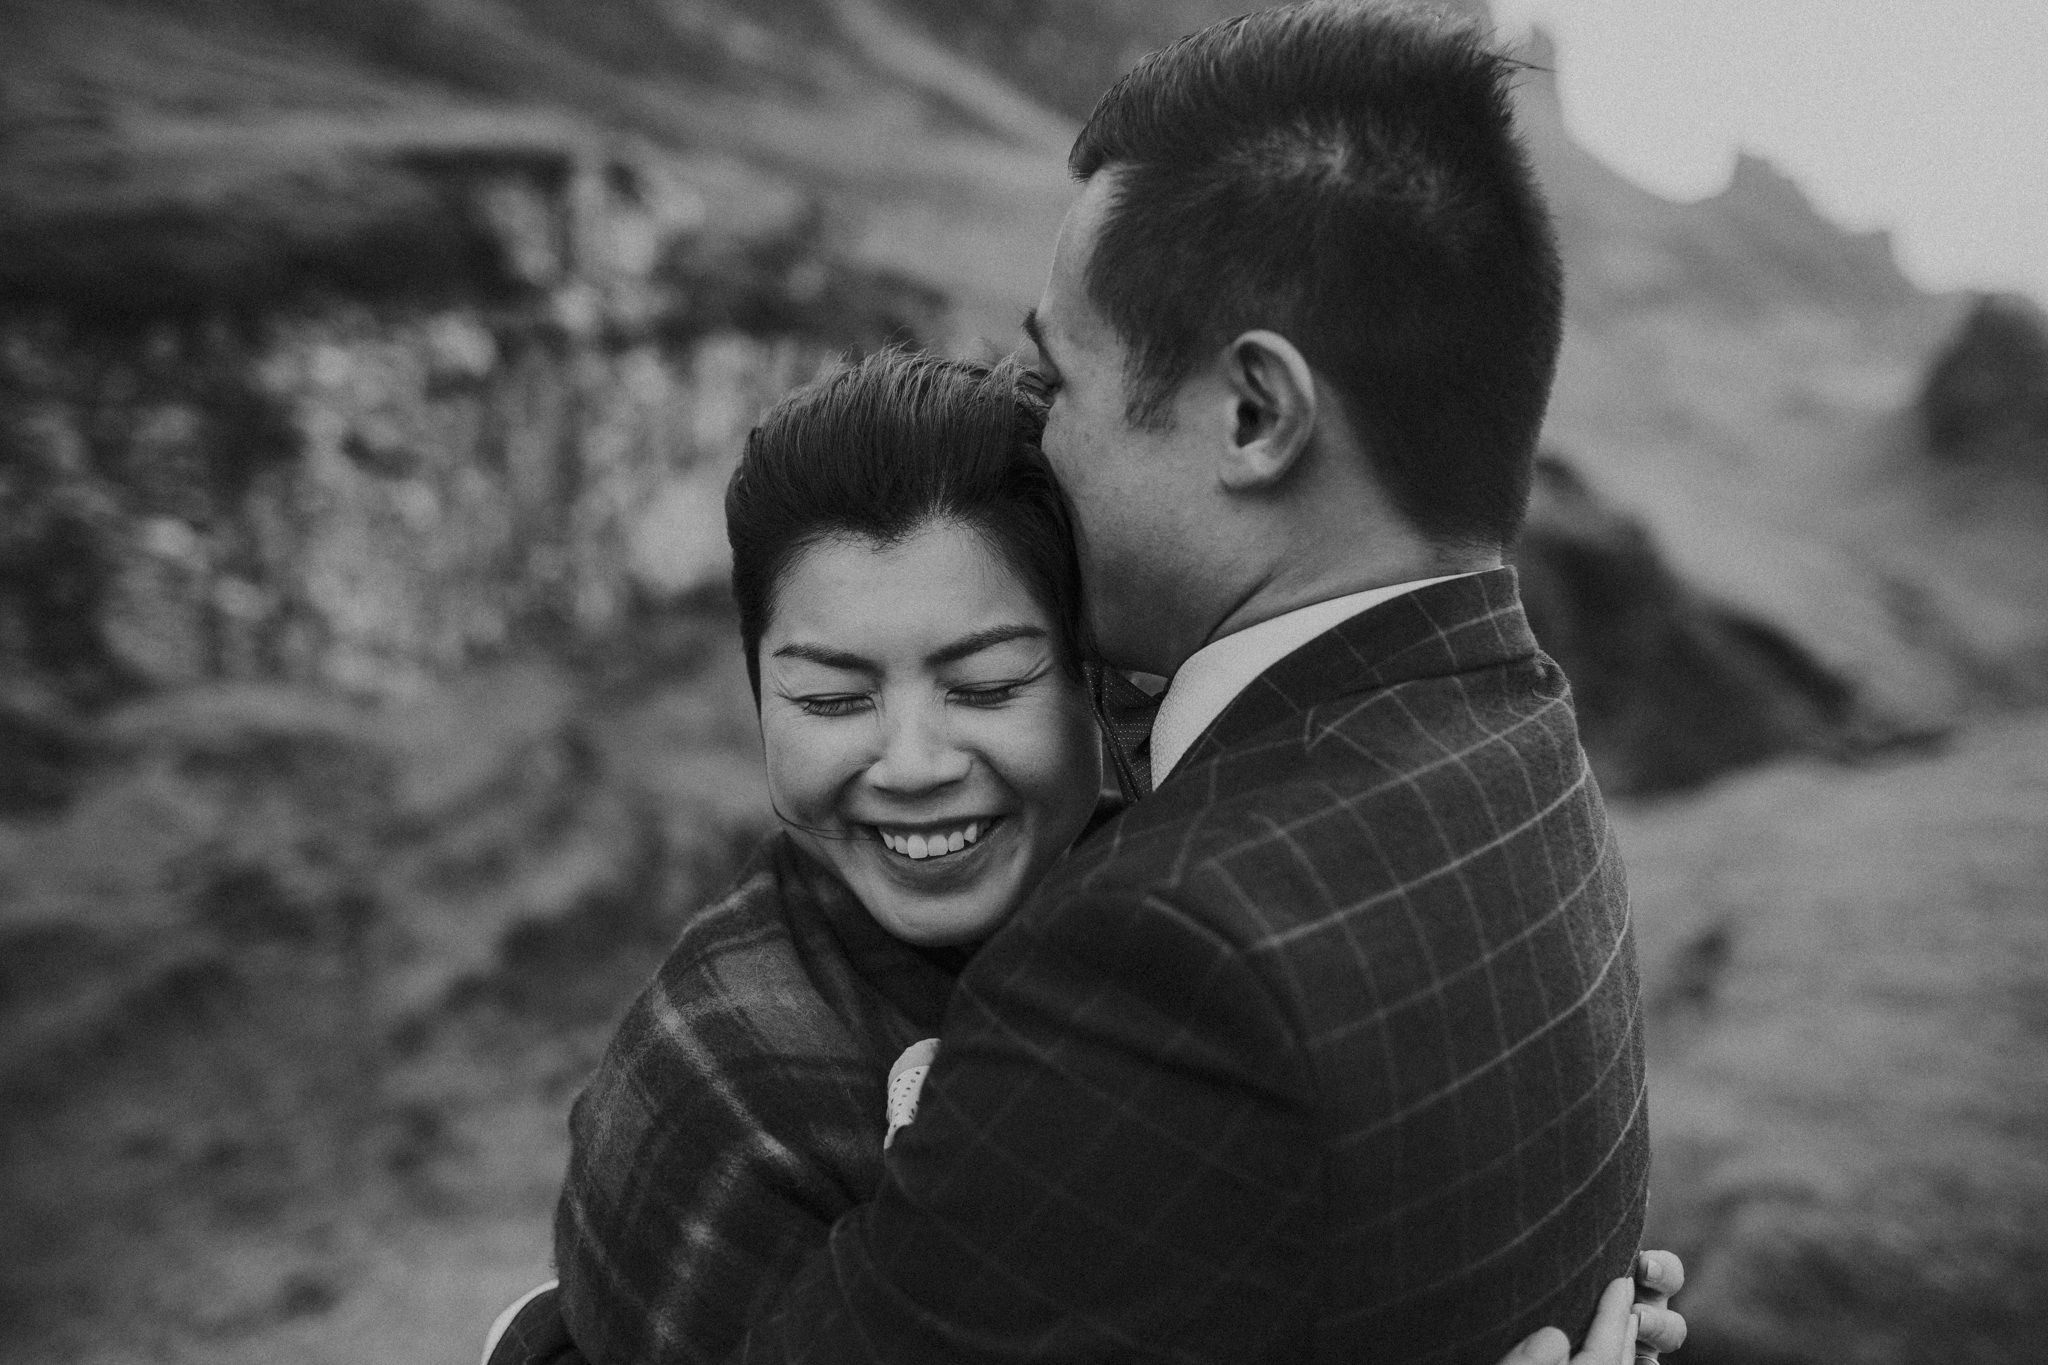 Isle of Skye Elopement | Intimate Scotland Elopement in the Isle of Skye | Scotland Wedding Photographer | Destination Wedding Photographer | www.blackbirdtale.com